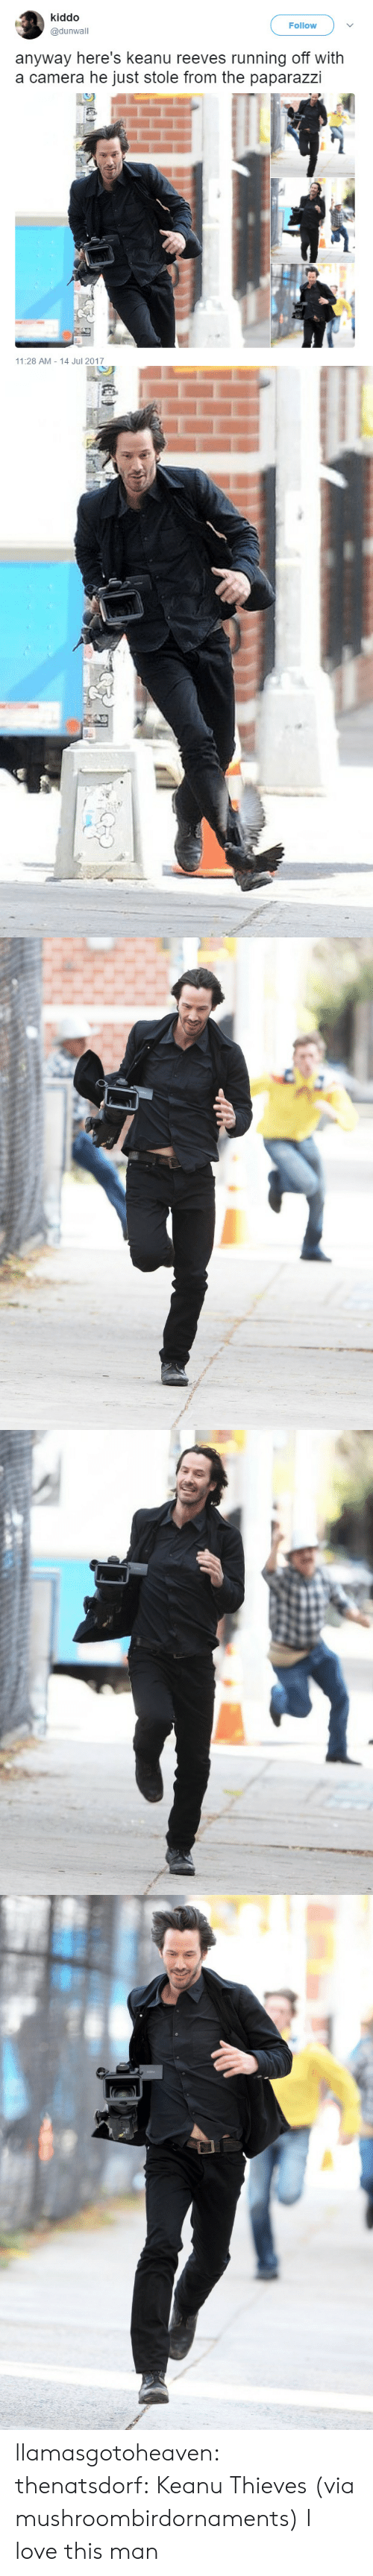 Love, Tumblr, and Blog: kiddo  @dunwall  Follow  anyway here's keanu reeves running off with  a camera he just stole from the paparazzi  11:28 AM 14 Jul 2017 llamasgotoheaven:  thenatsdorf: Keanu Thieves (via mushroombirdornaments)  I love this man